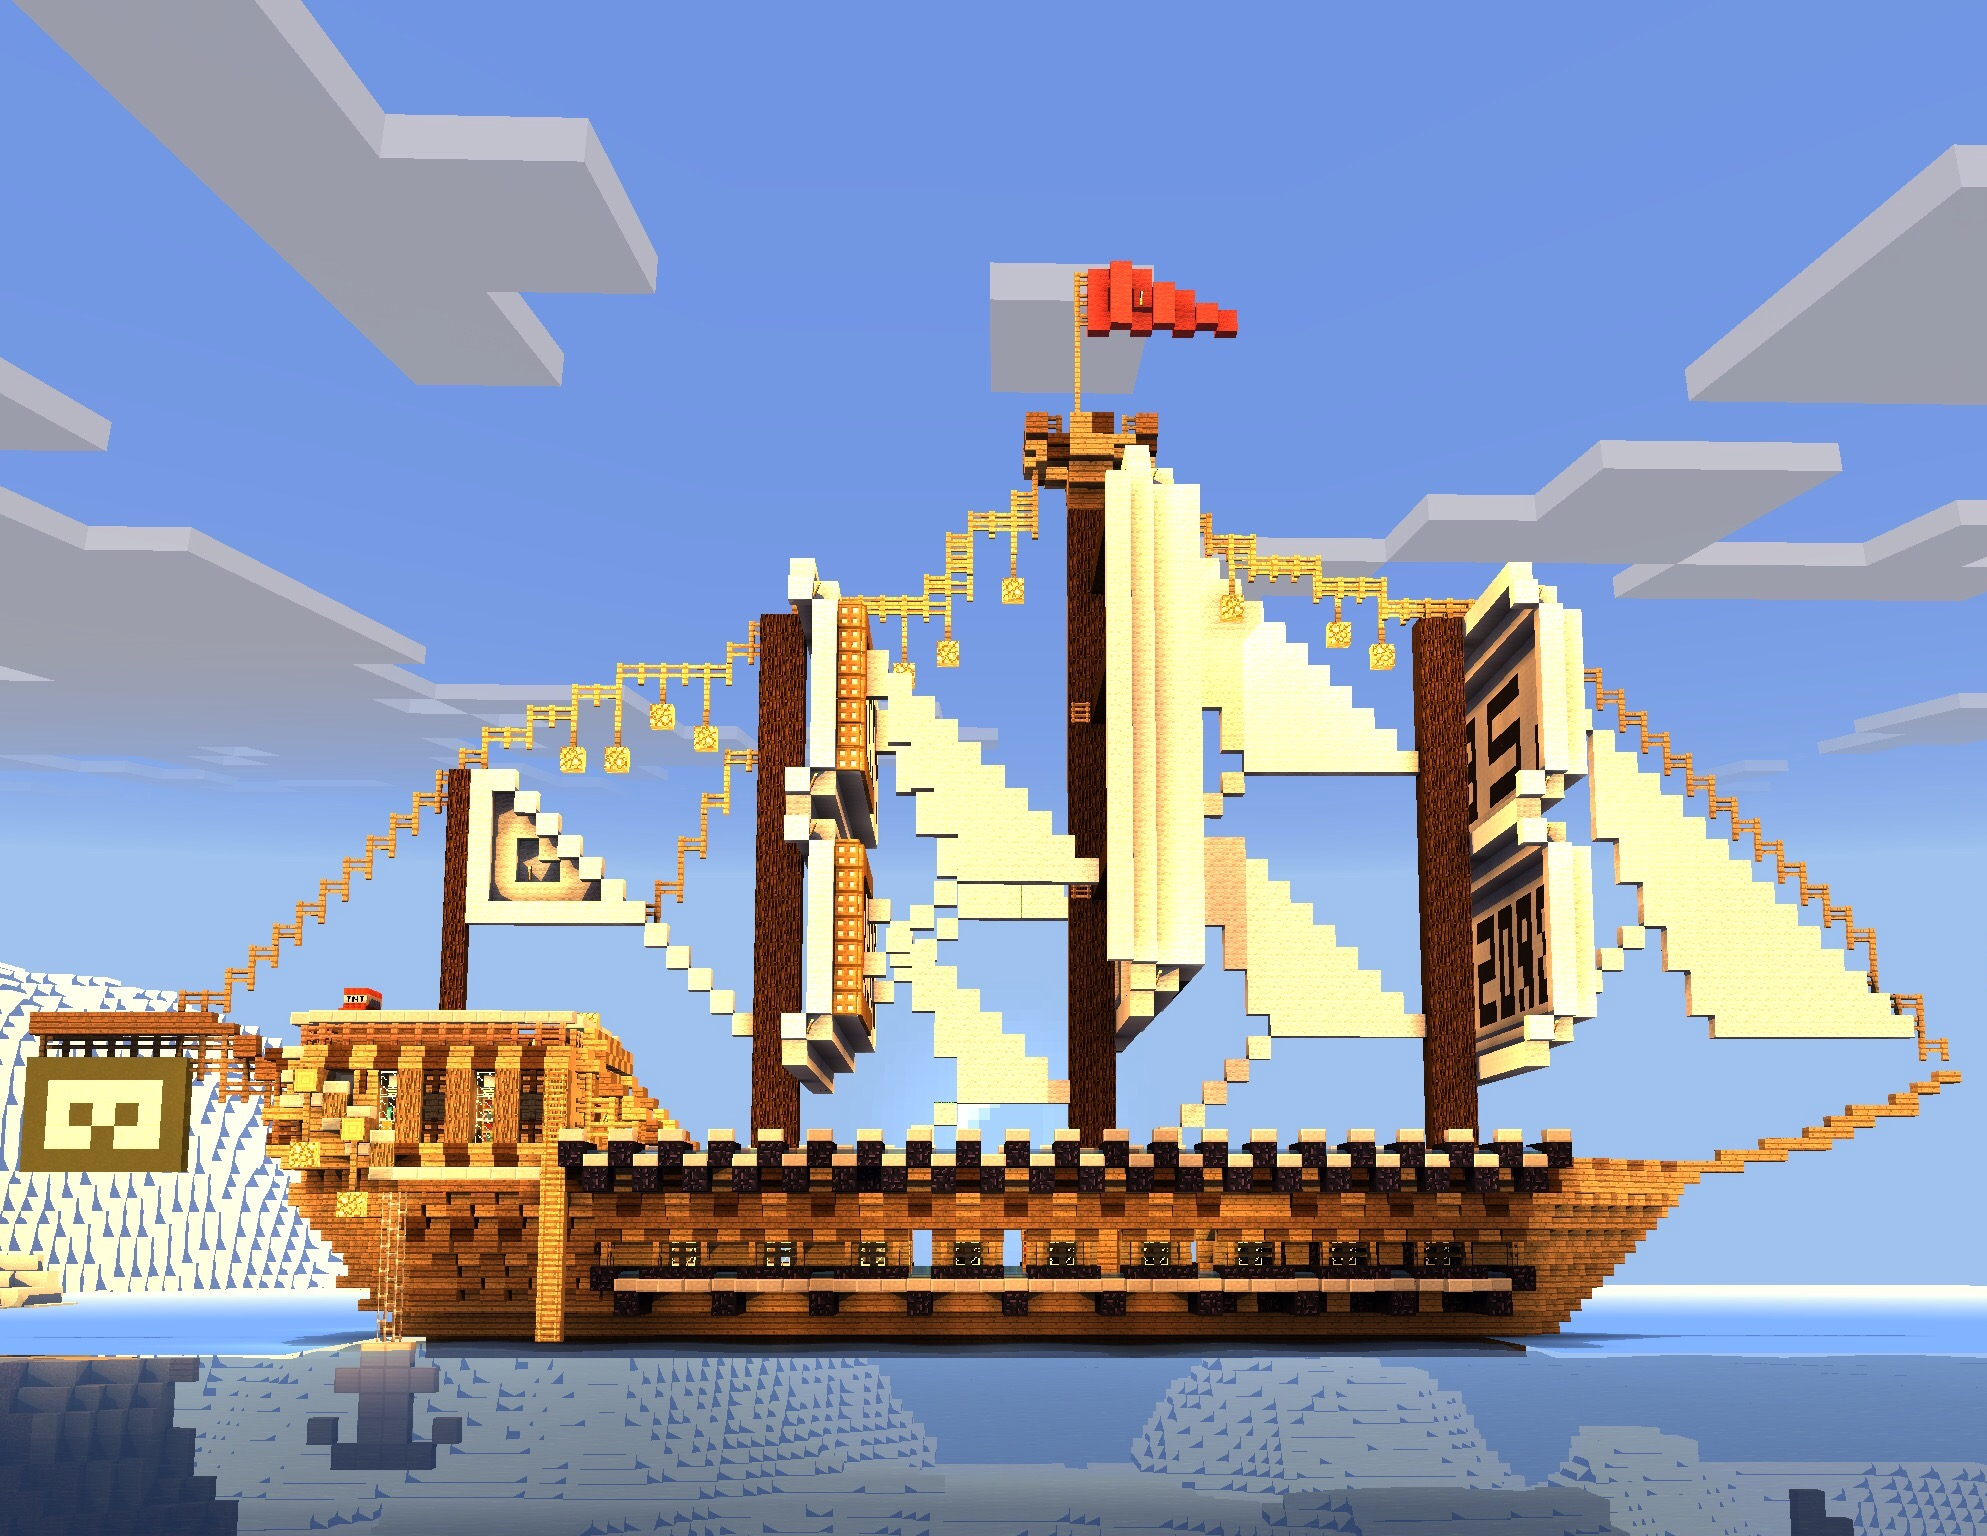 0 11 1 mcpe giant pirate ship krusty bucket v2 ios and android